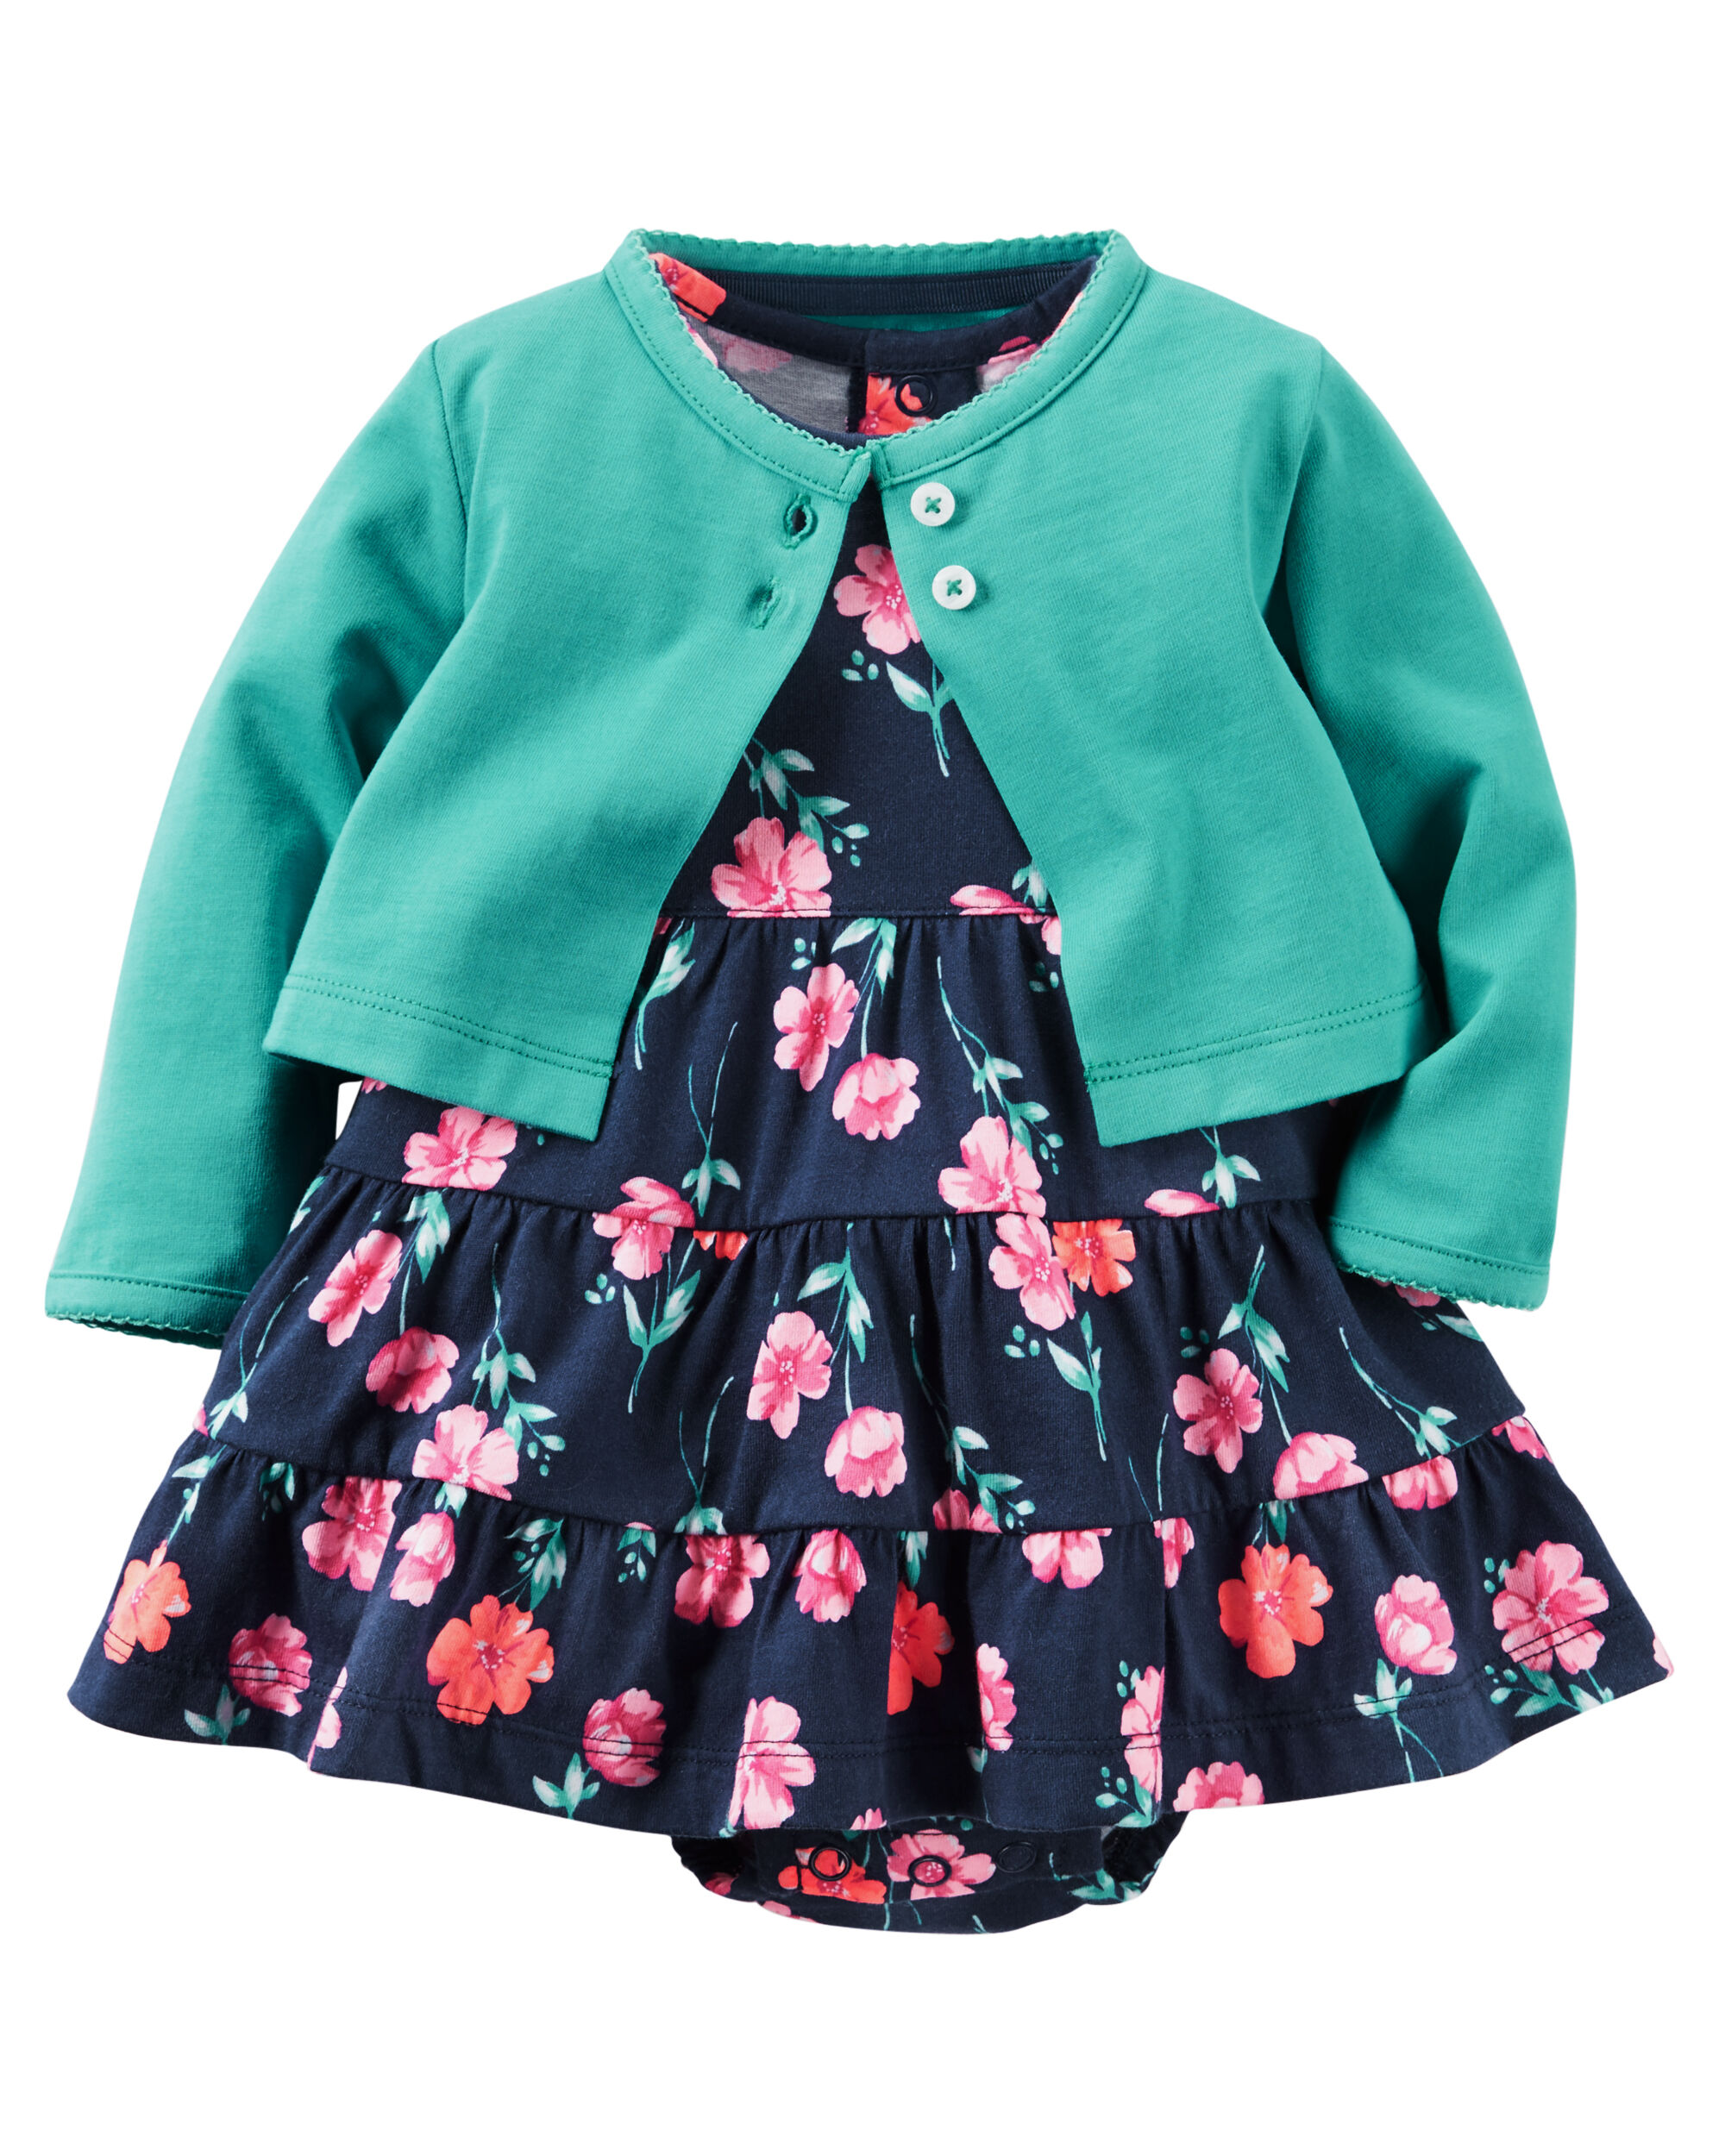 exceptional baby dress